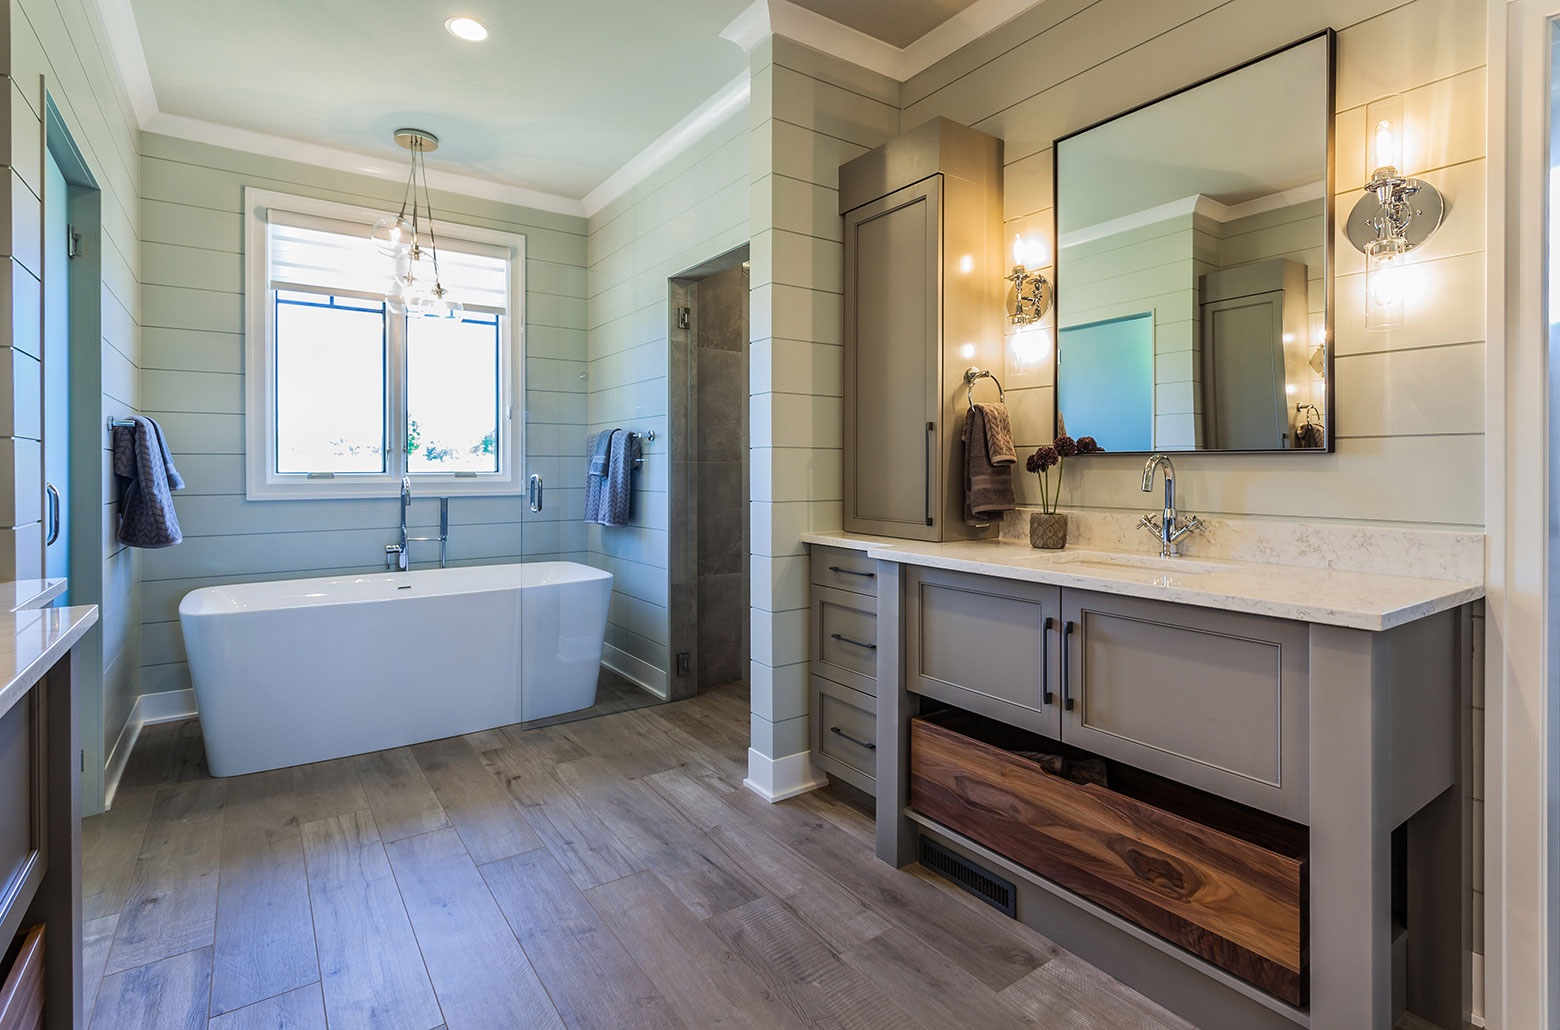 bathroom tub and cabinets